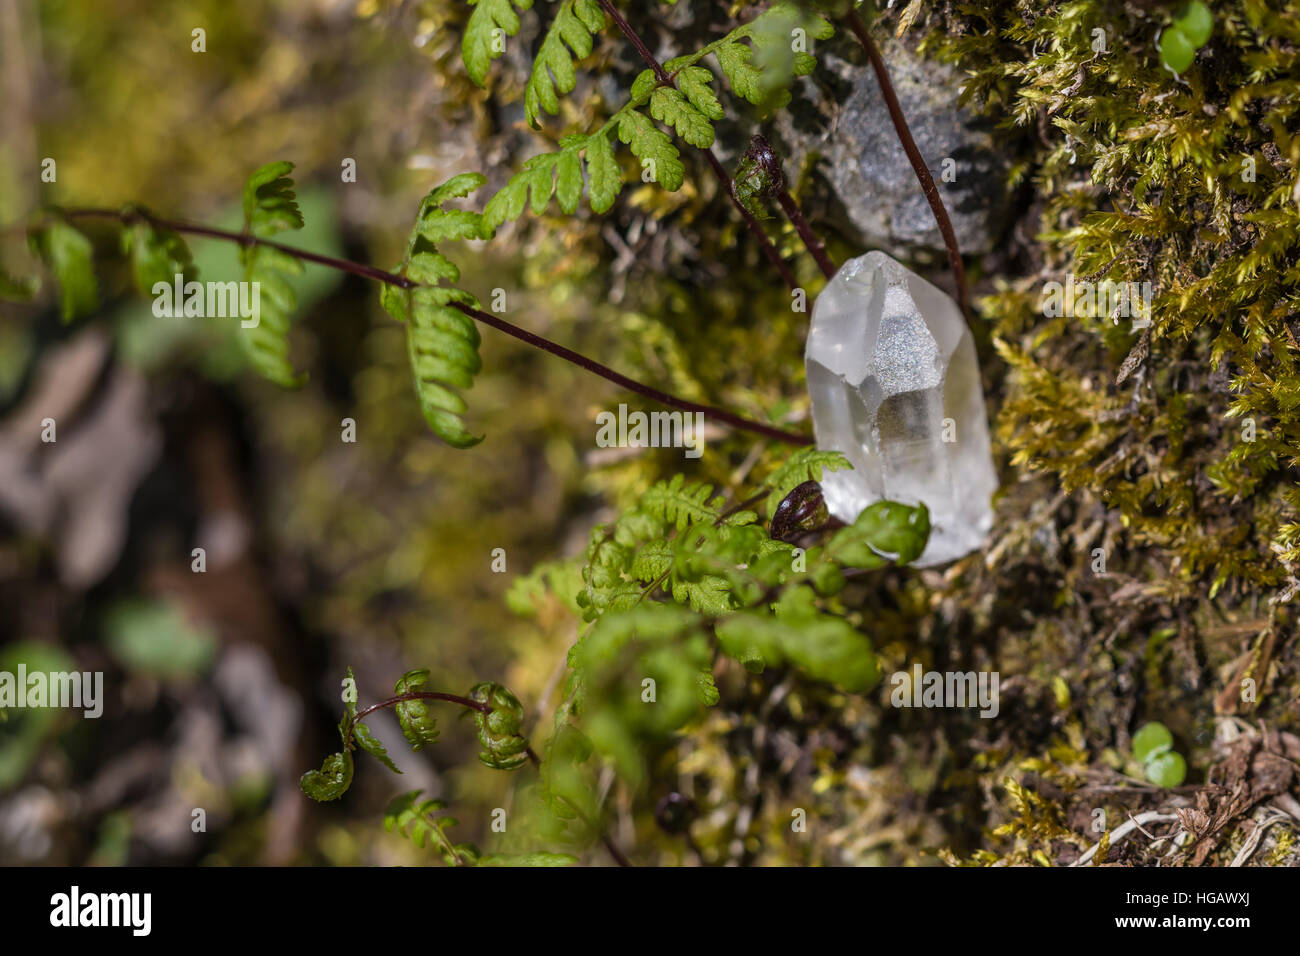 Clear Quartz crystal found among moss and ferns in forest at Serpent Mound State Memorial, where there have been Stock Photo